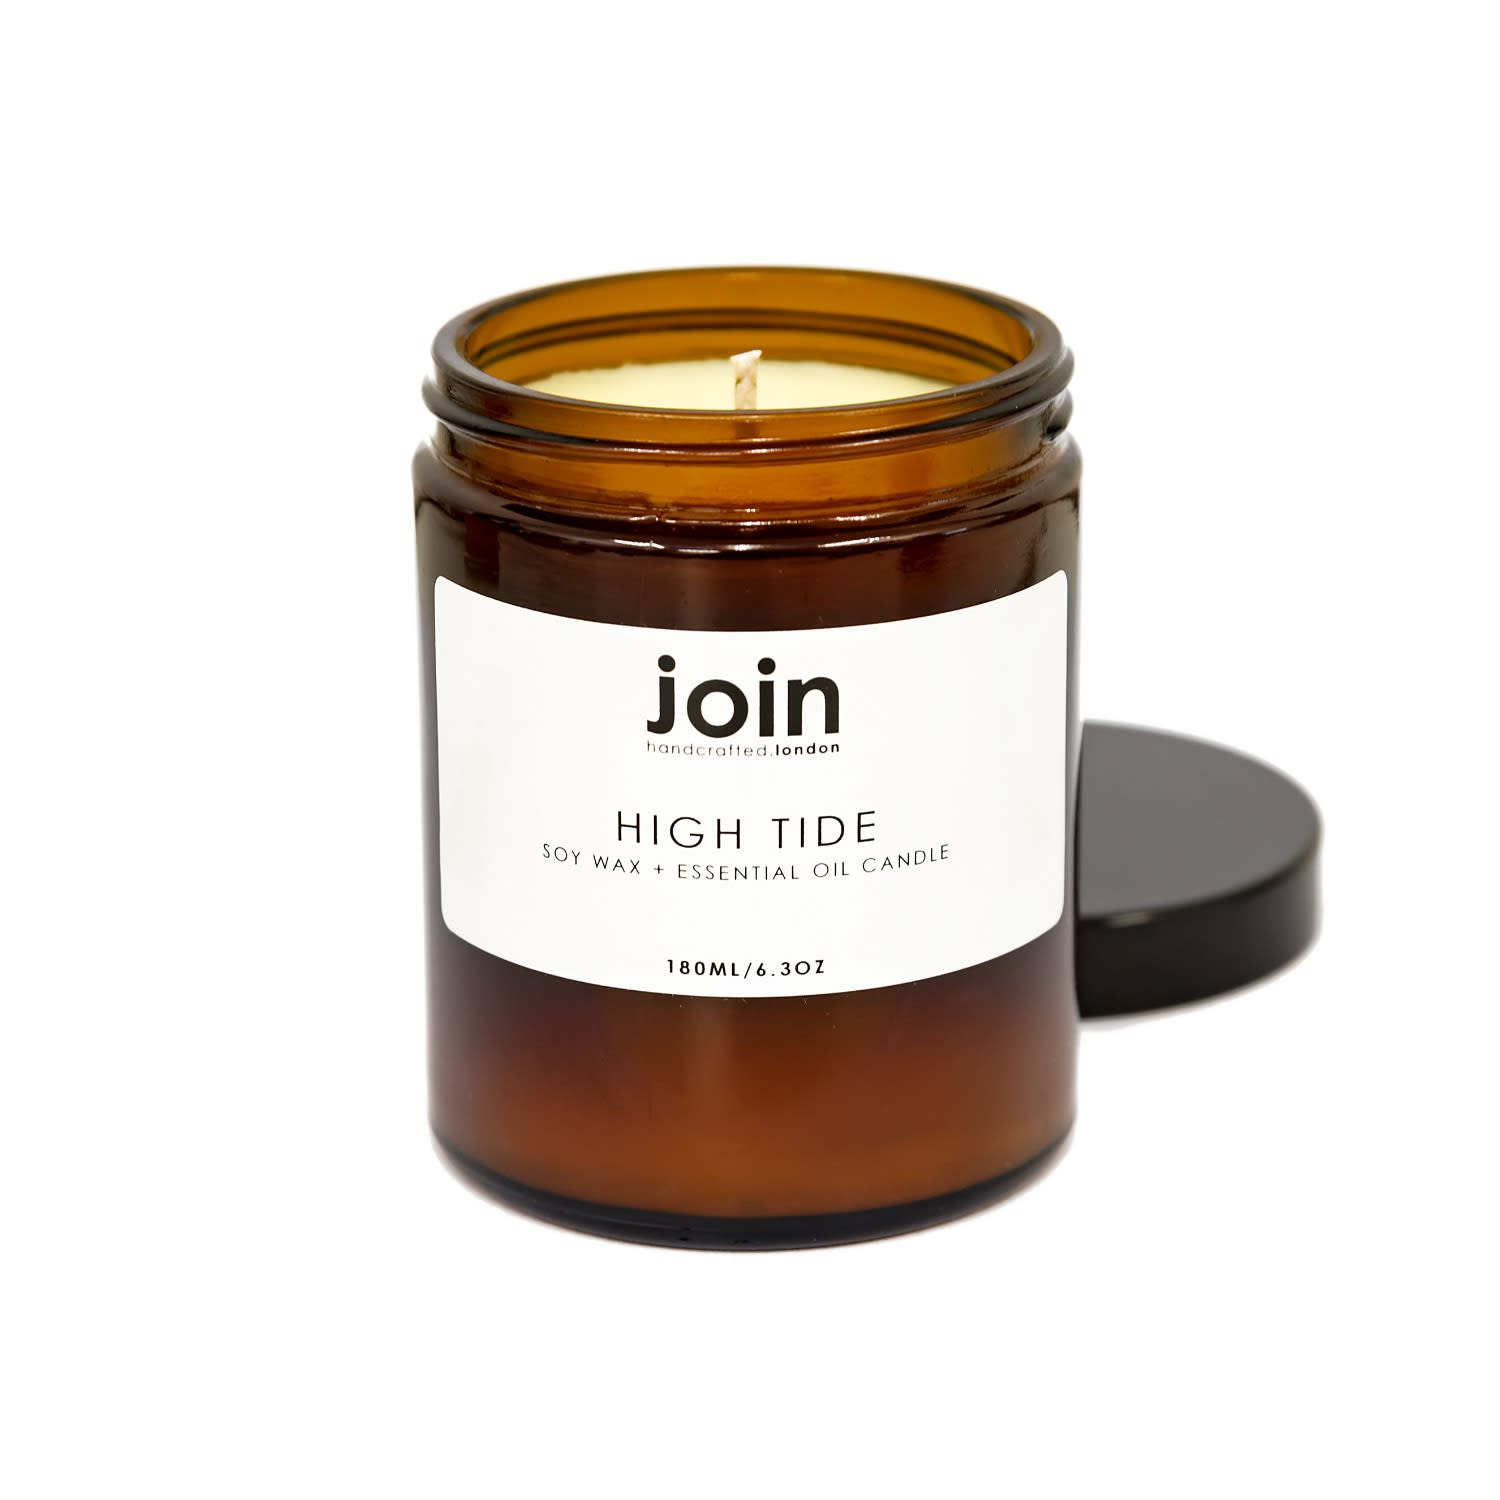 High Tide Luxury Scented Soy Wax & Essential Oil Candle by Join